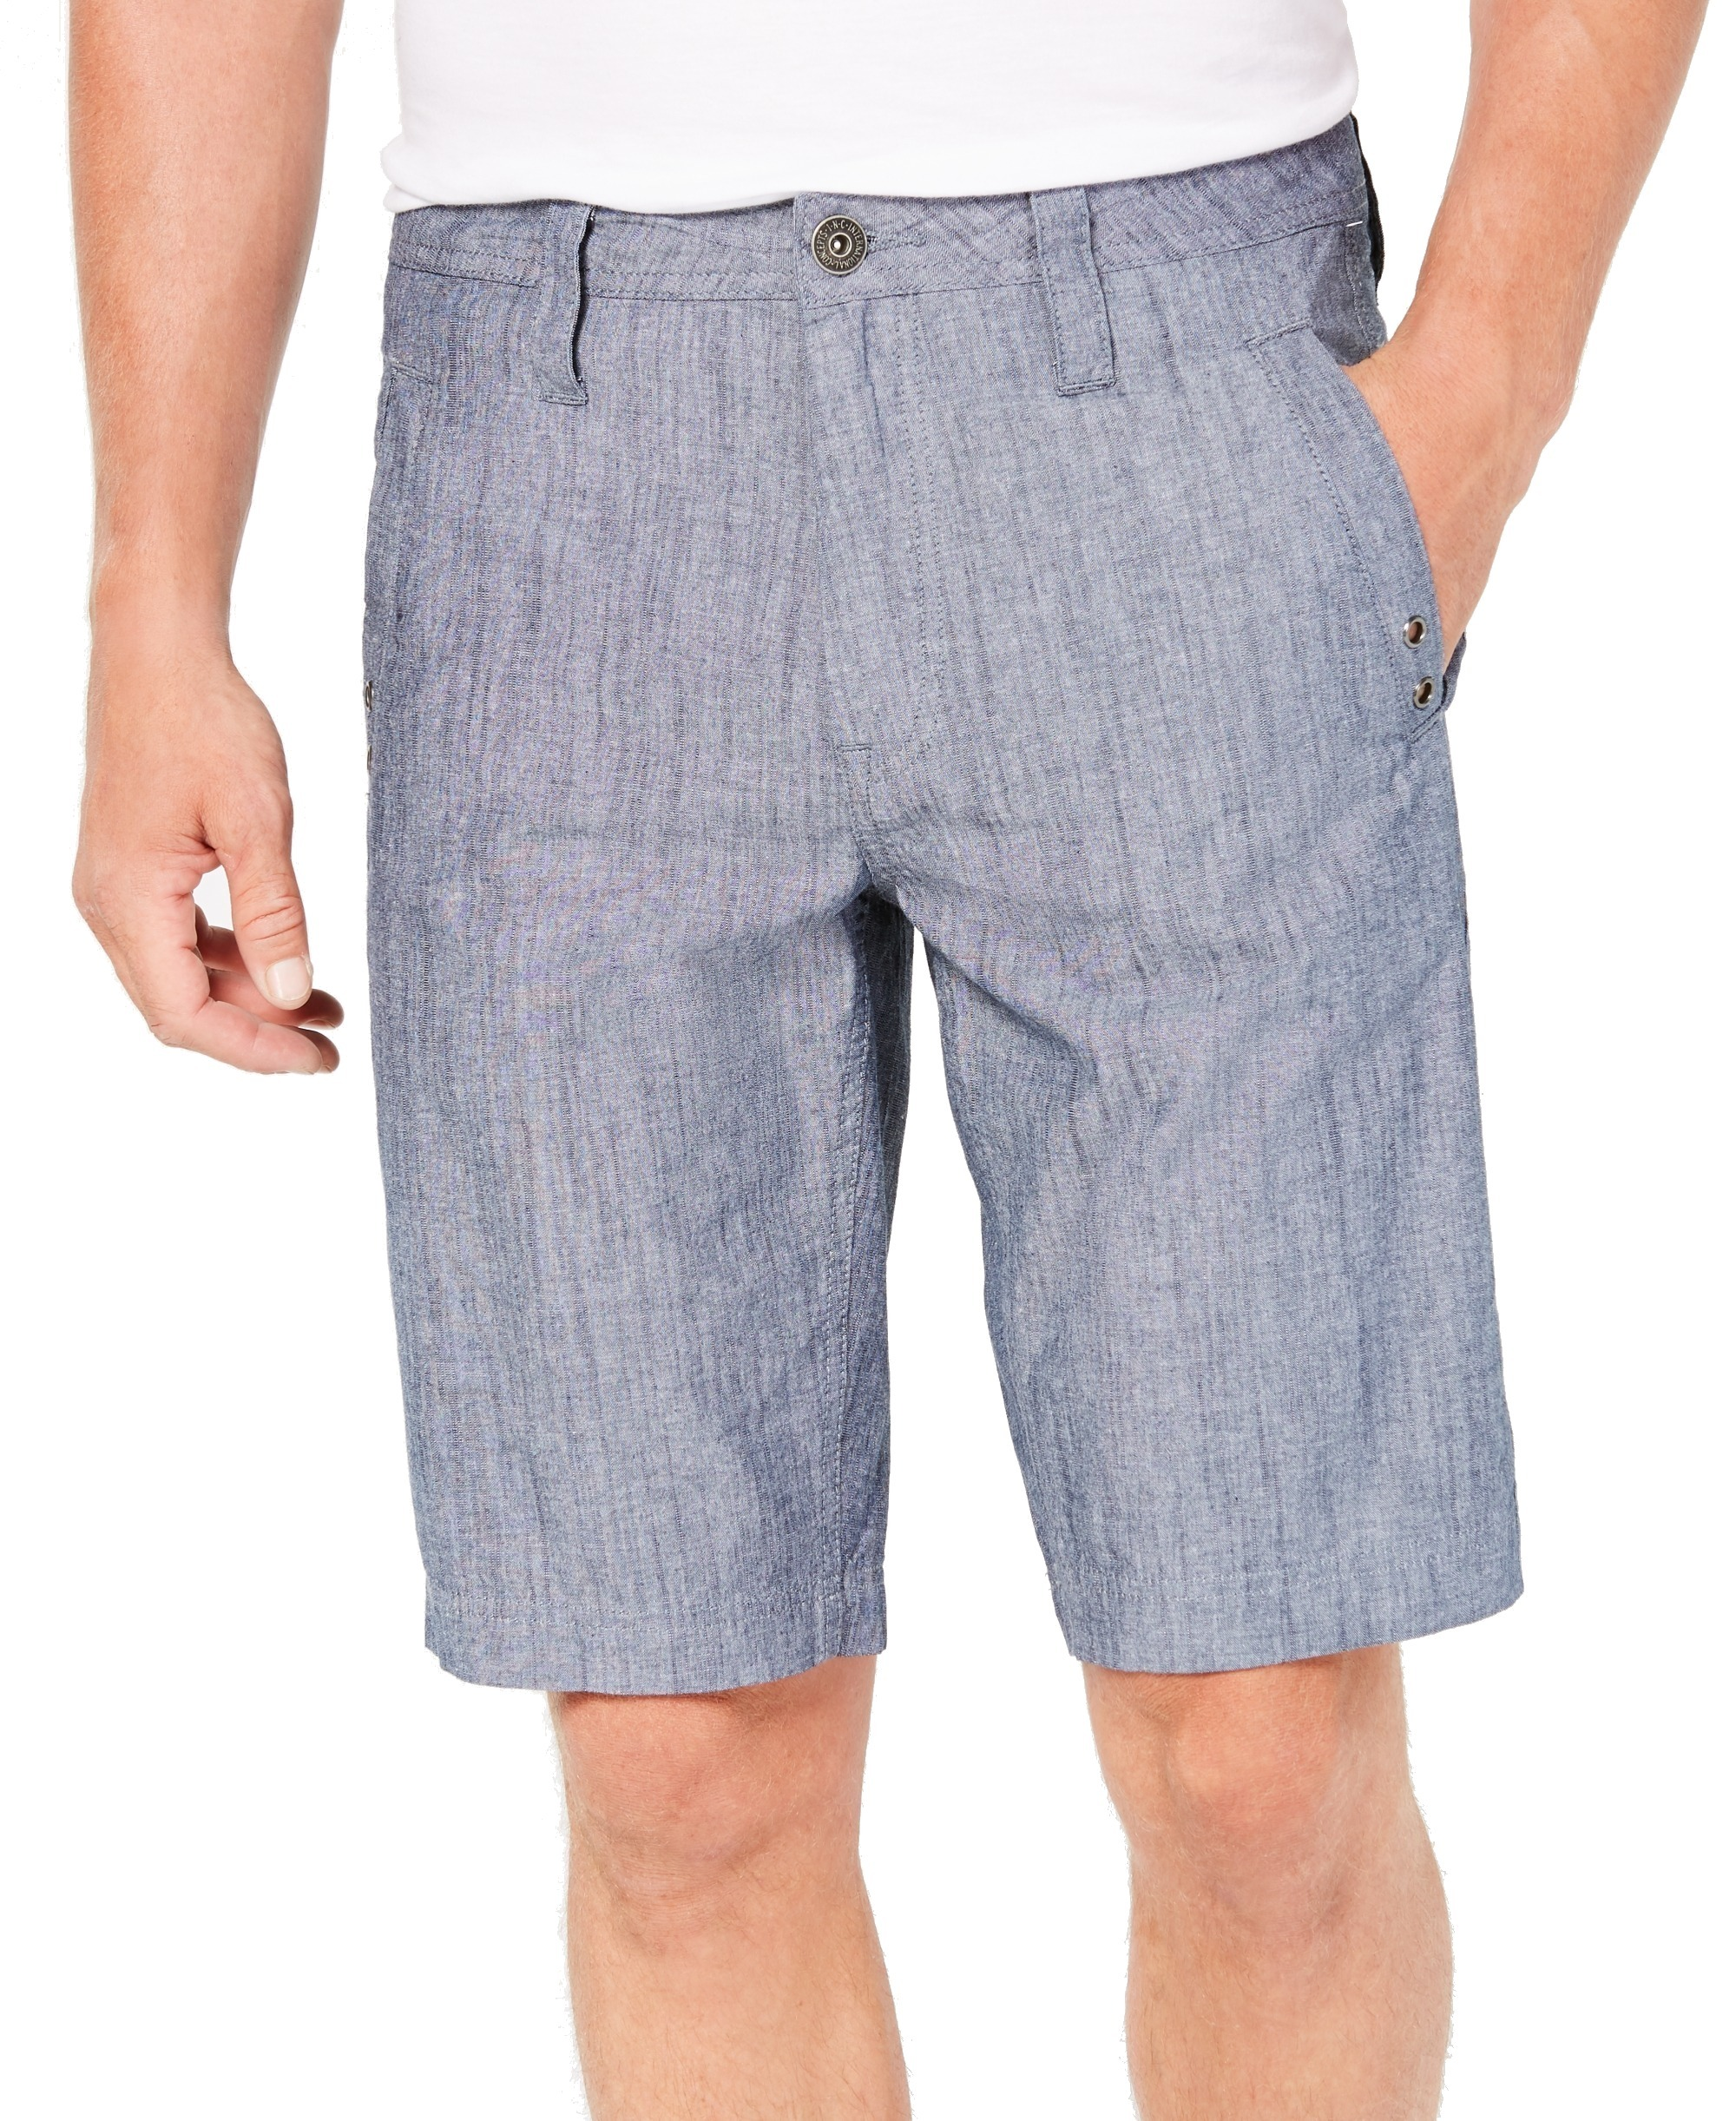 INC-NEW-Chambray-Navy-Blue-Mens-Size-33-Regular-Fit-Flat-Front-Shorts-49-208